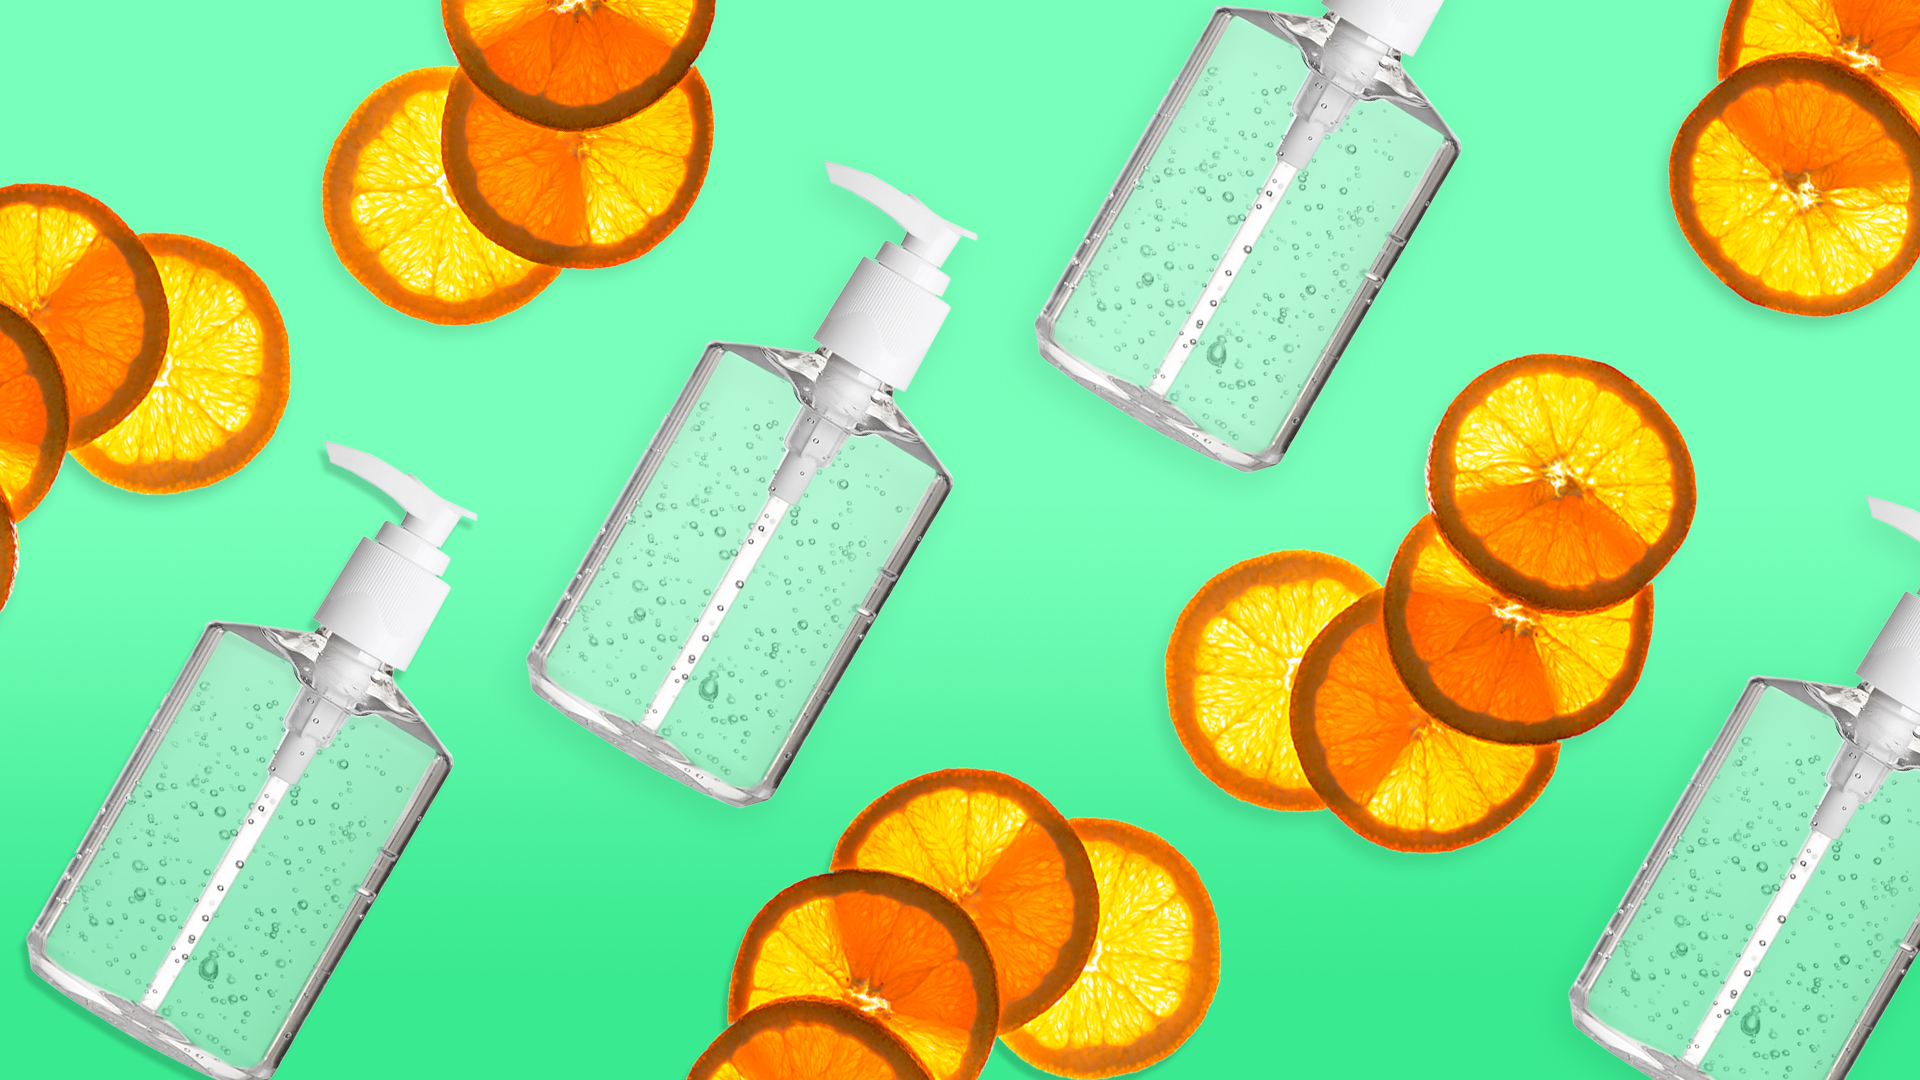 Hand Sanitizer & Immune Boosters